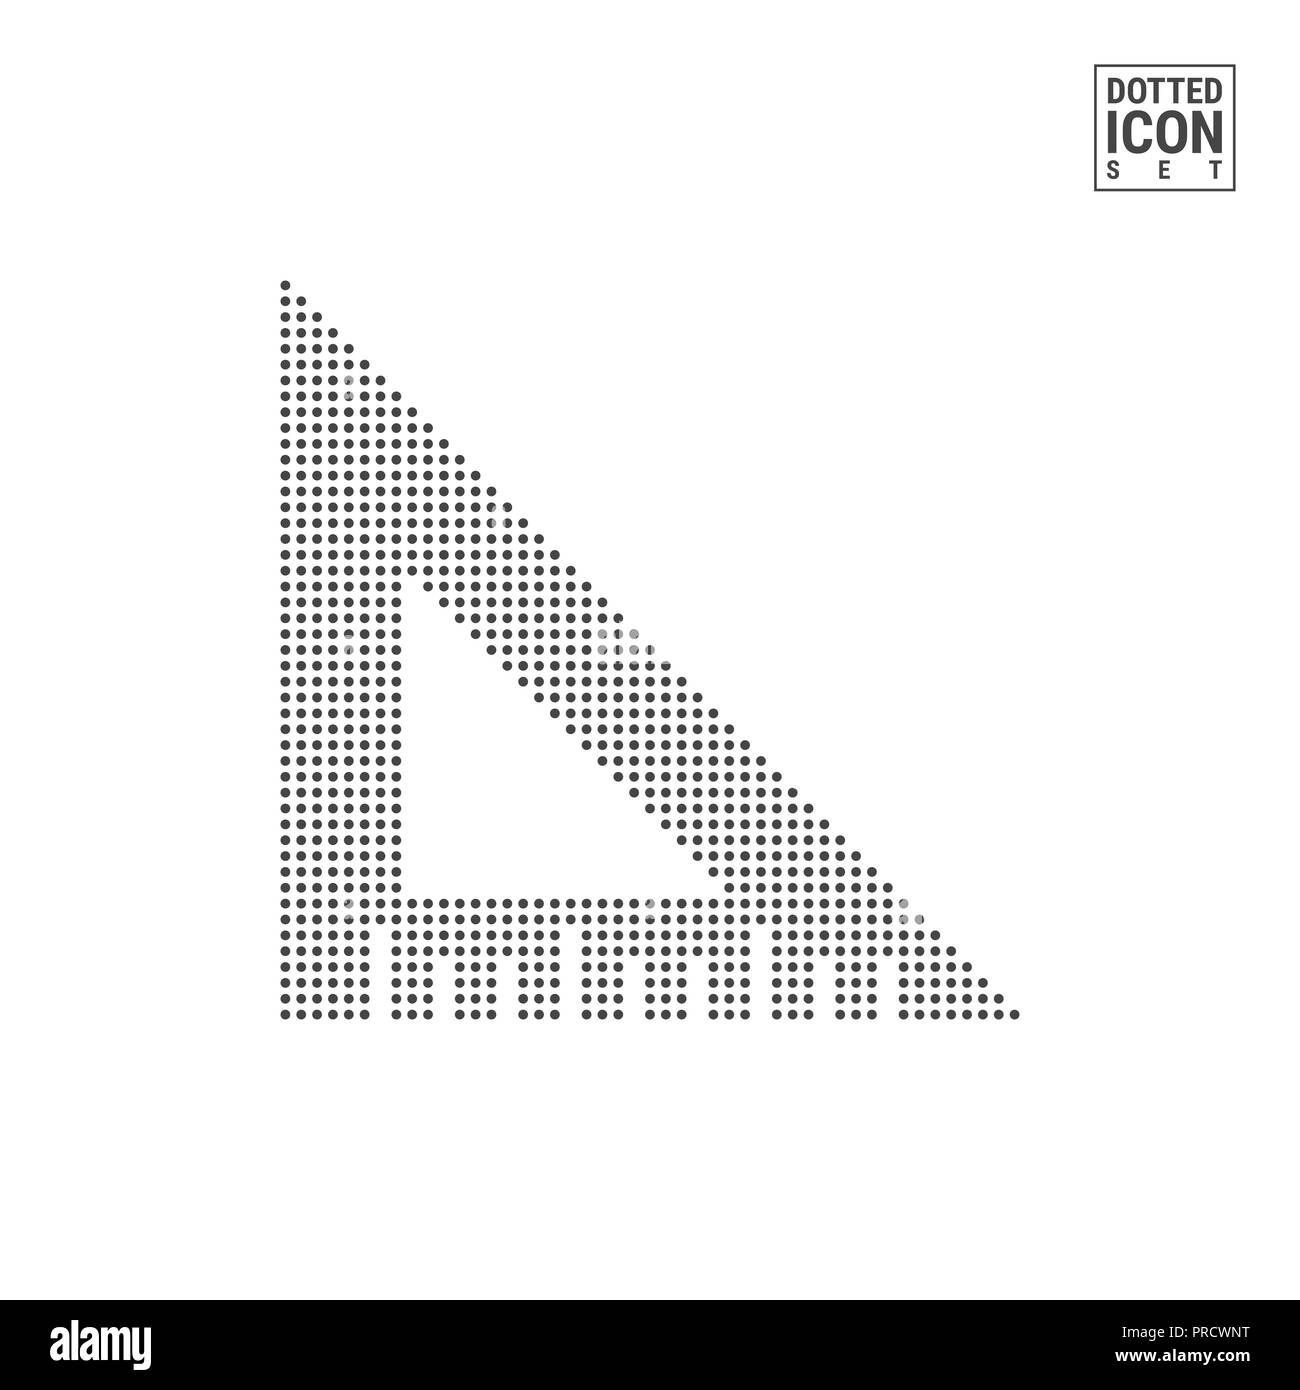 Angle Ruler Dot Pattern Icon. Engineering Dotted Icon Isolated on White. Background, Design Template. Can Be Used for Advertising, Web and Mobile UI. - Stock Image